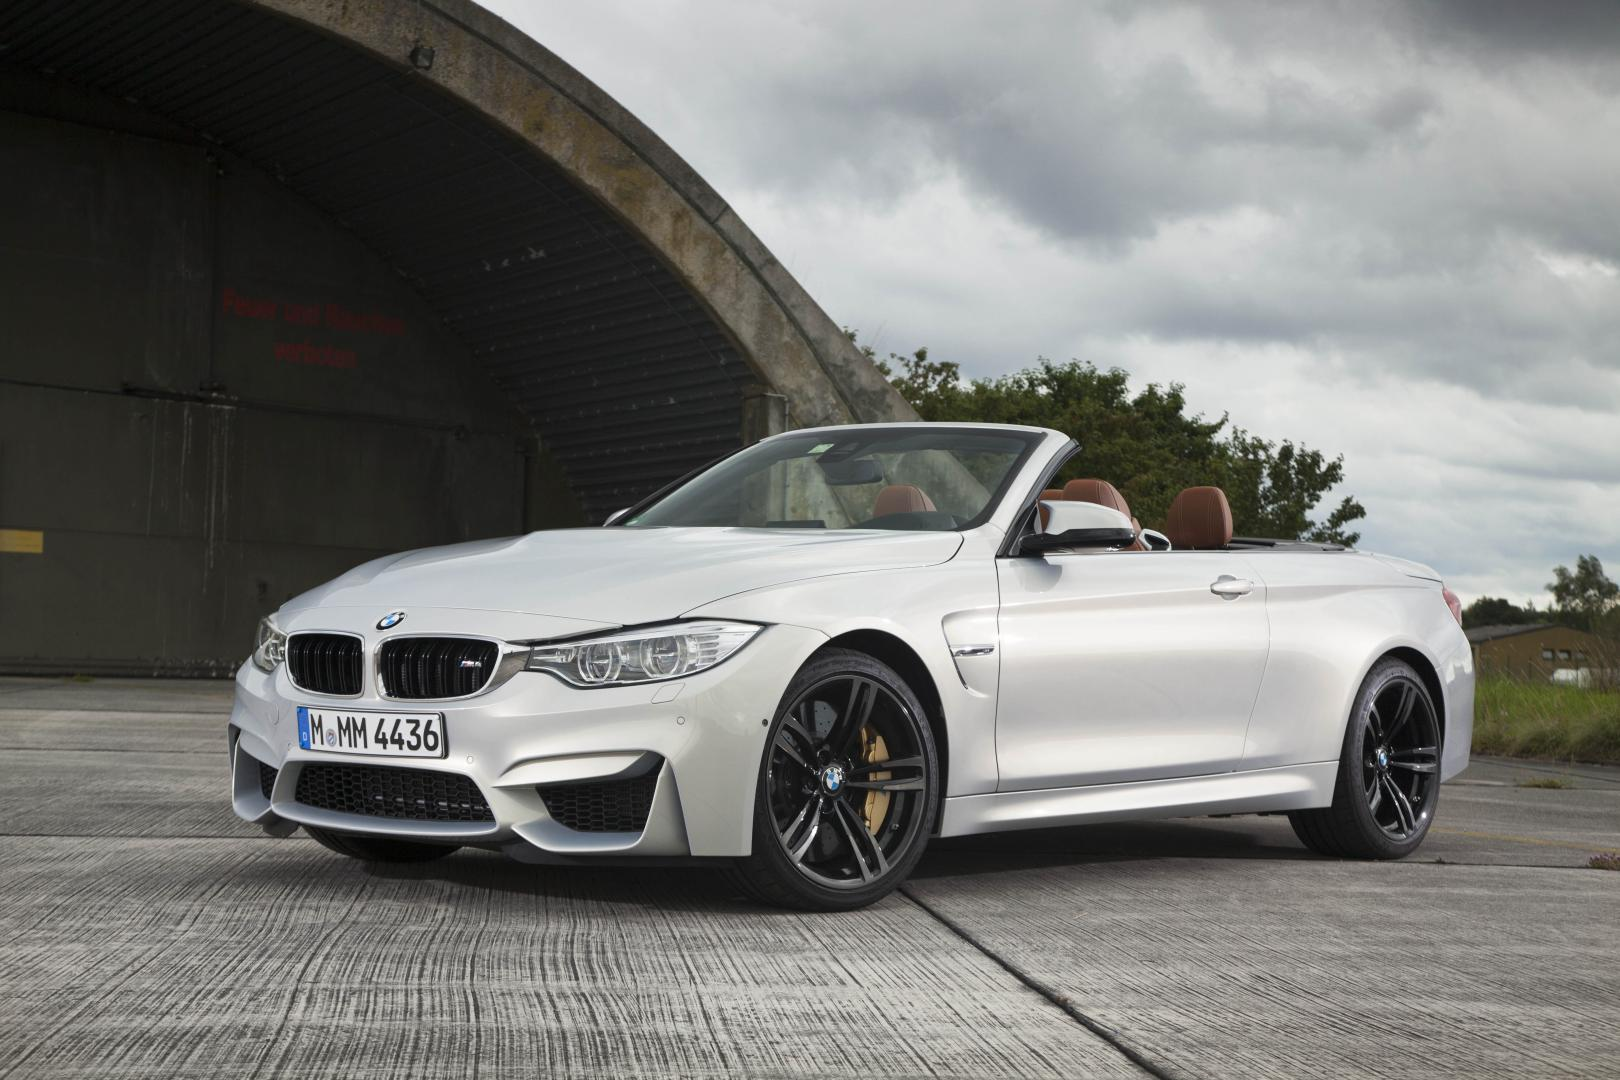 bmw m4 cabrio 2014 test en specificaties topgear nederland. Black Bedroom Furniture Sets. Home Design Ideas